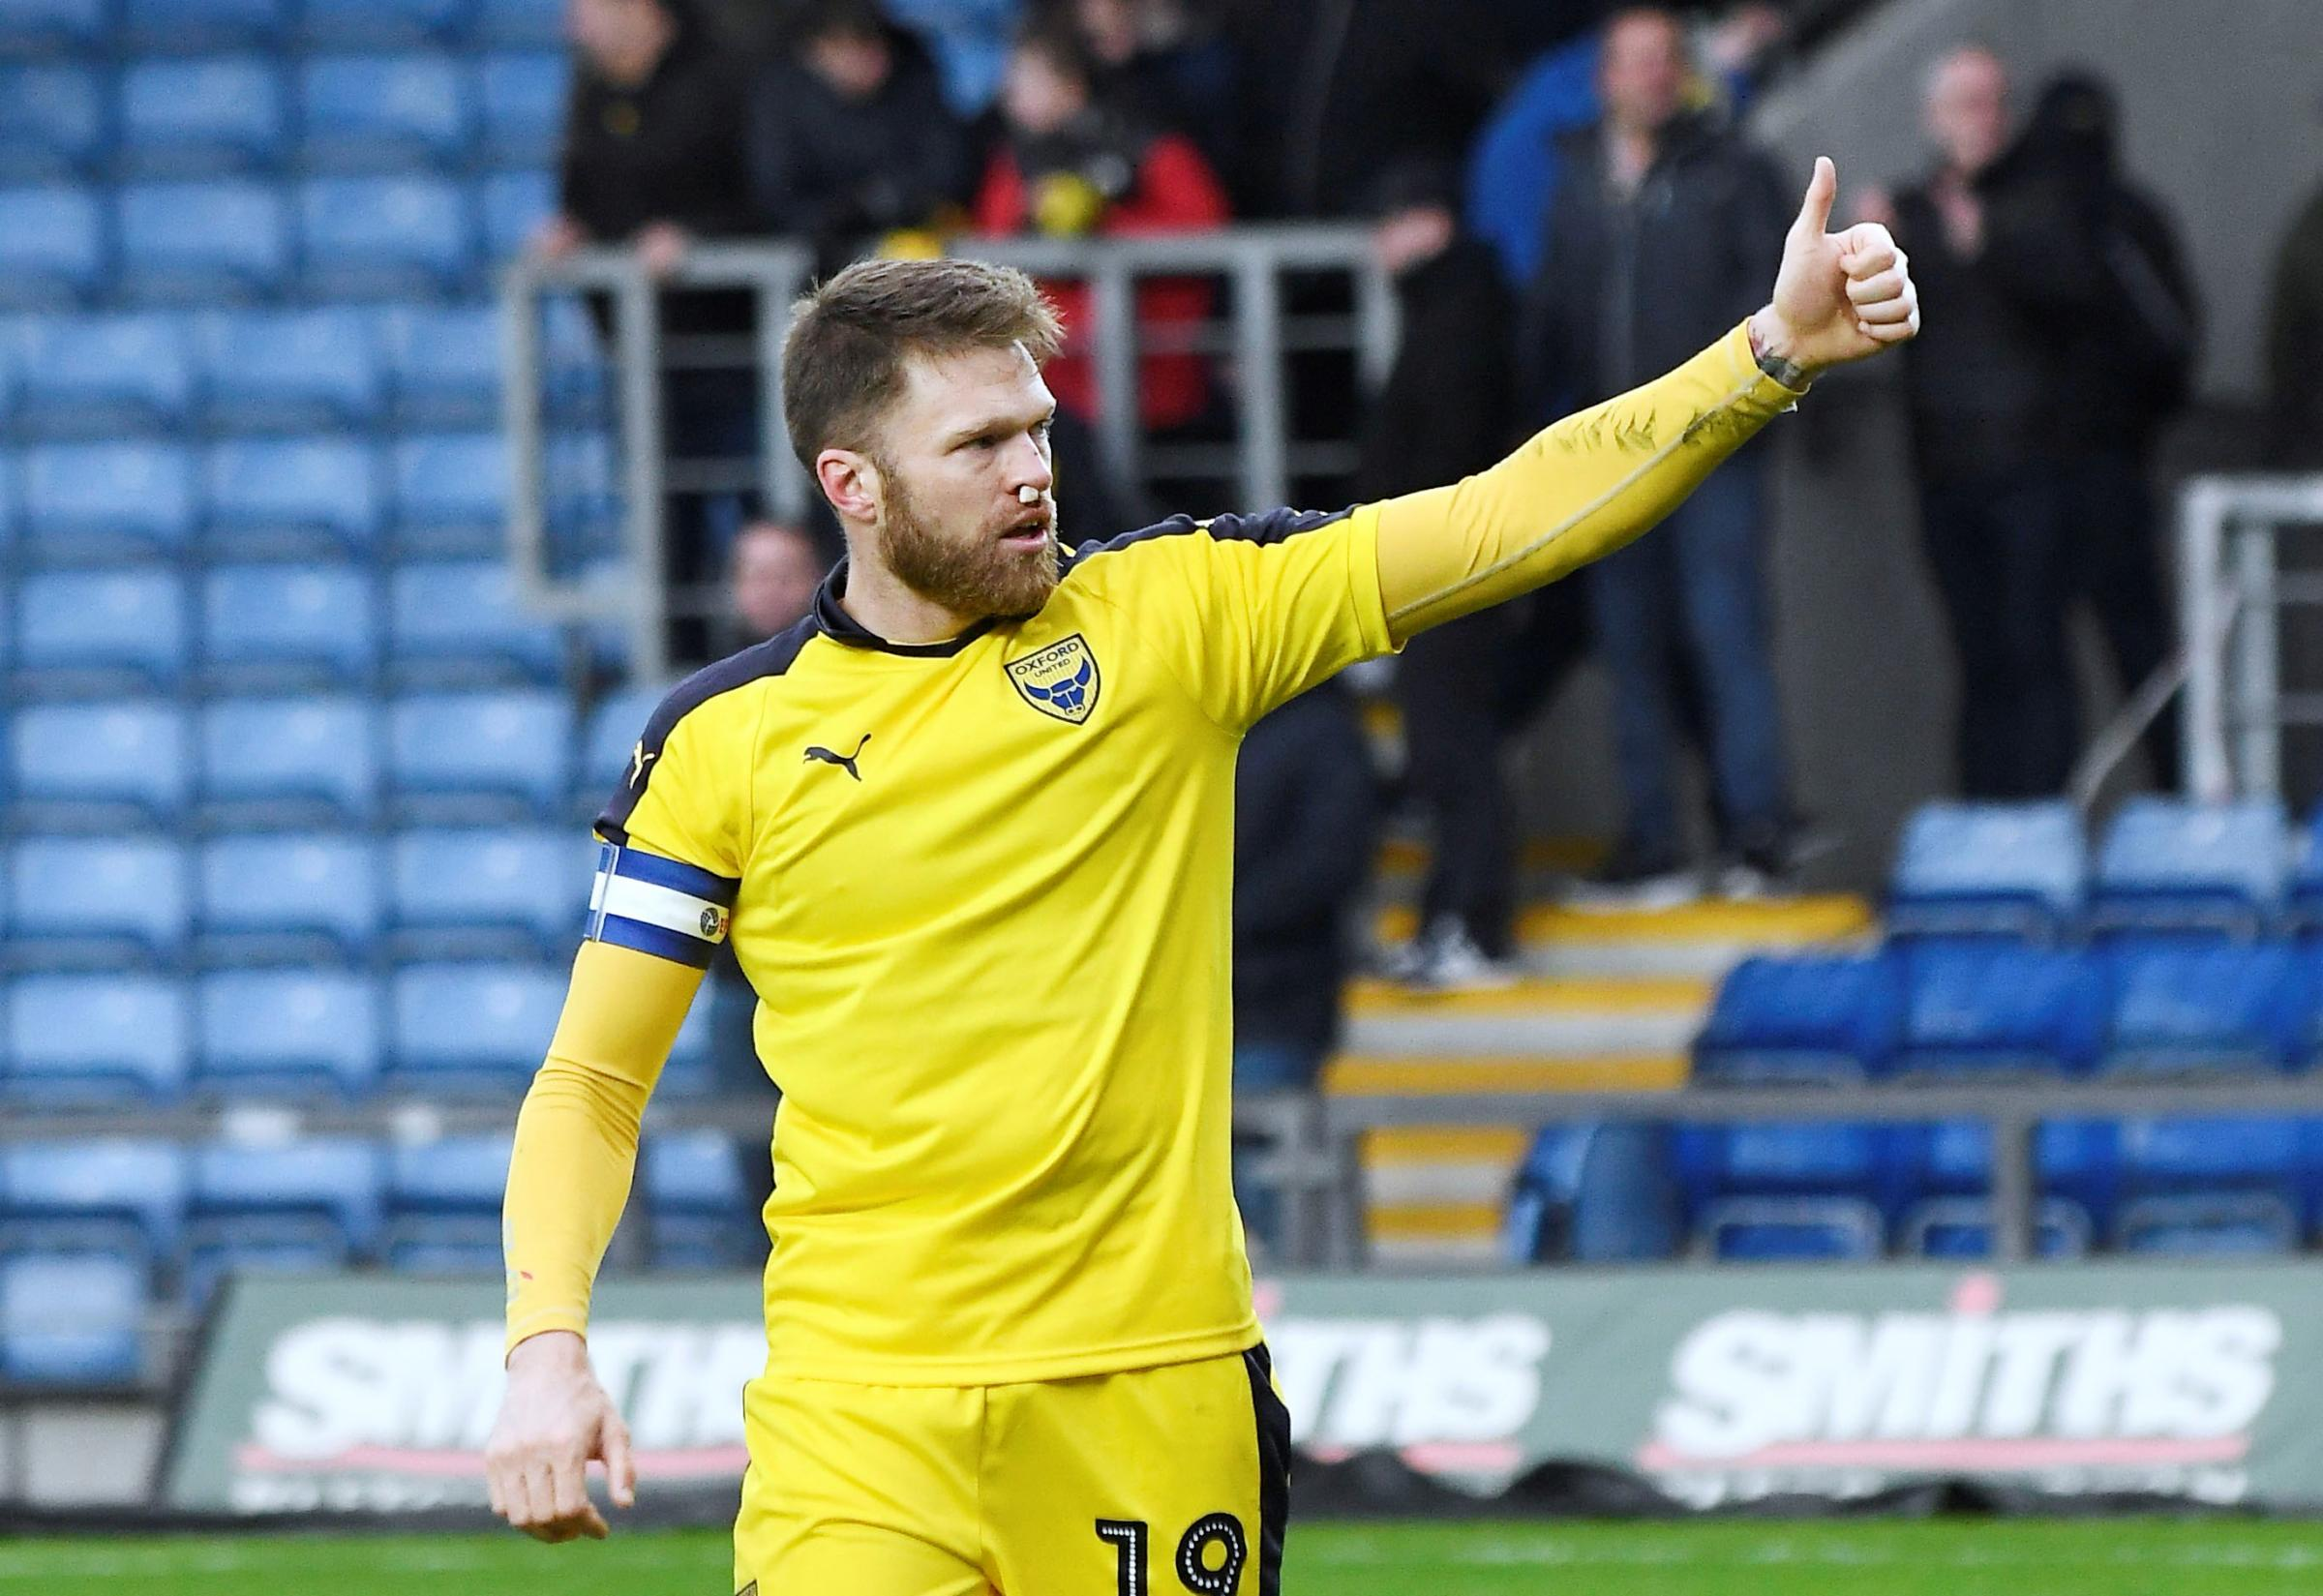 Jamie Mackie comes in for Jerome Sinclair up front for Oxford United